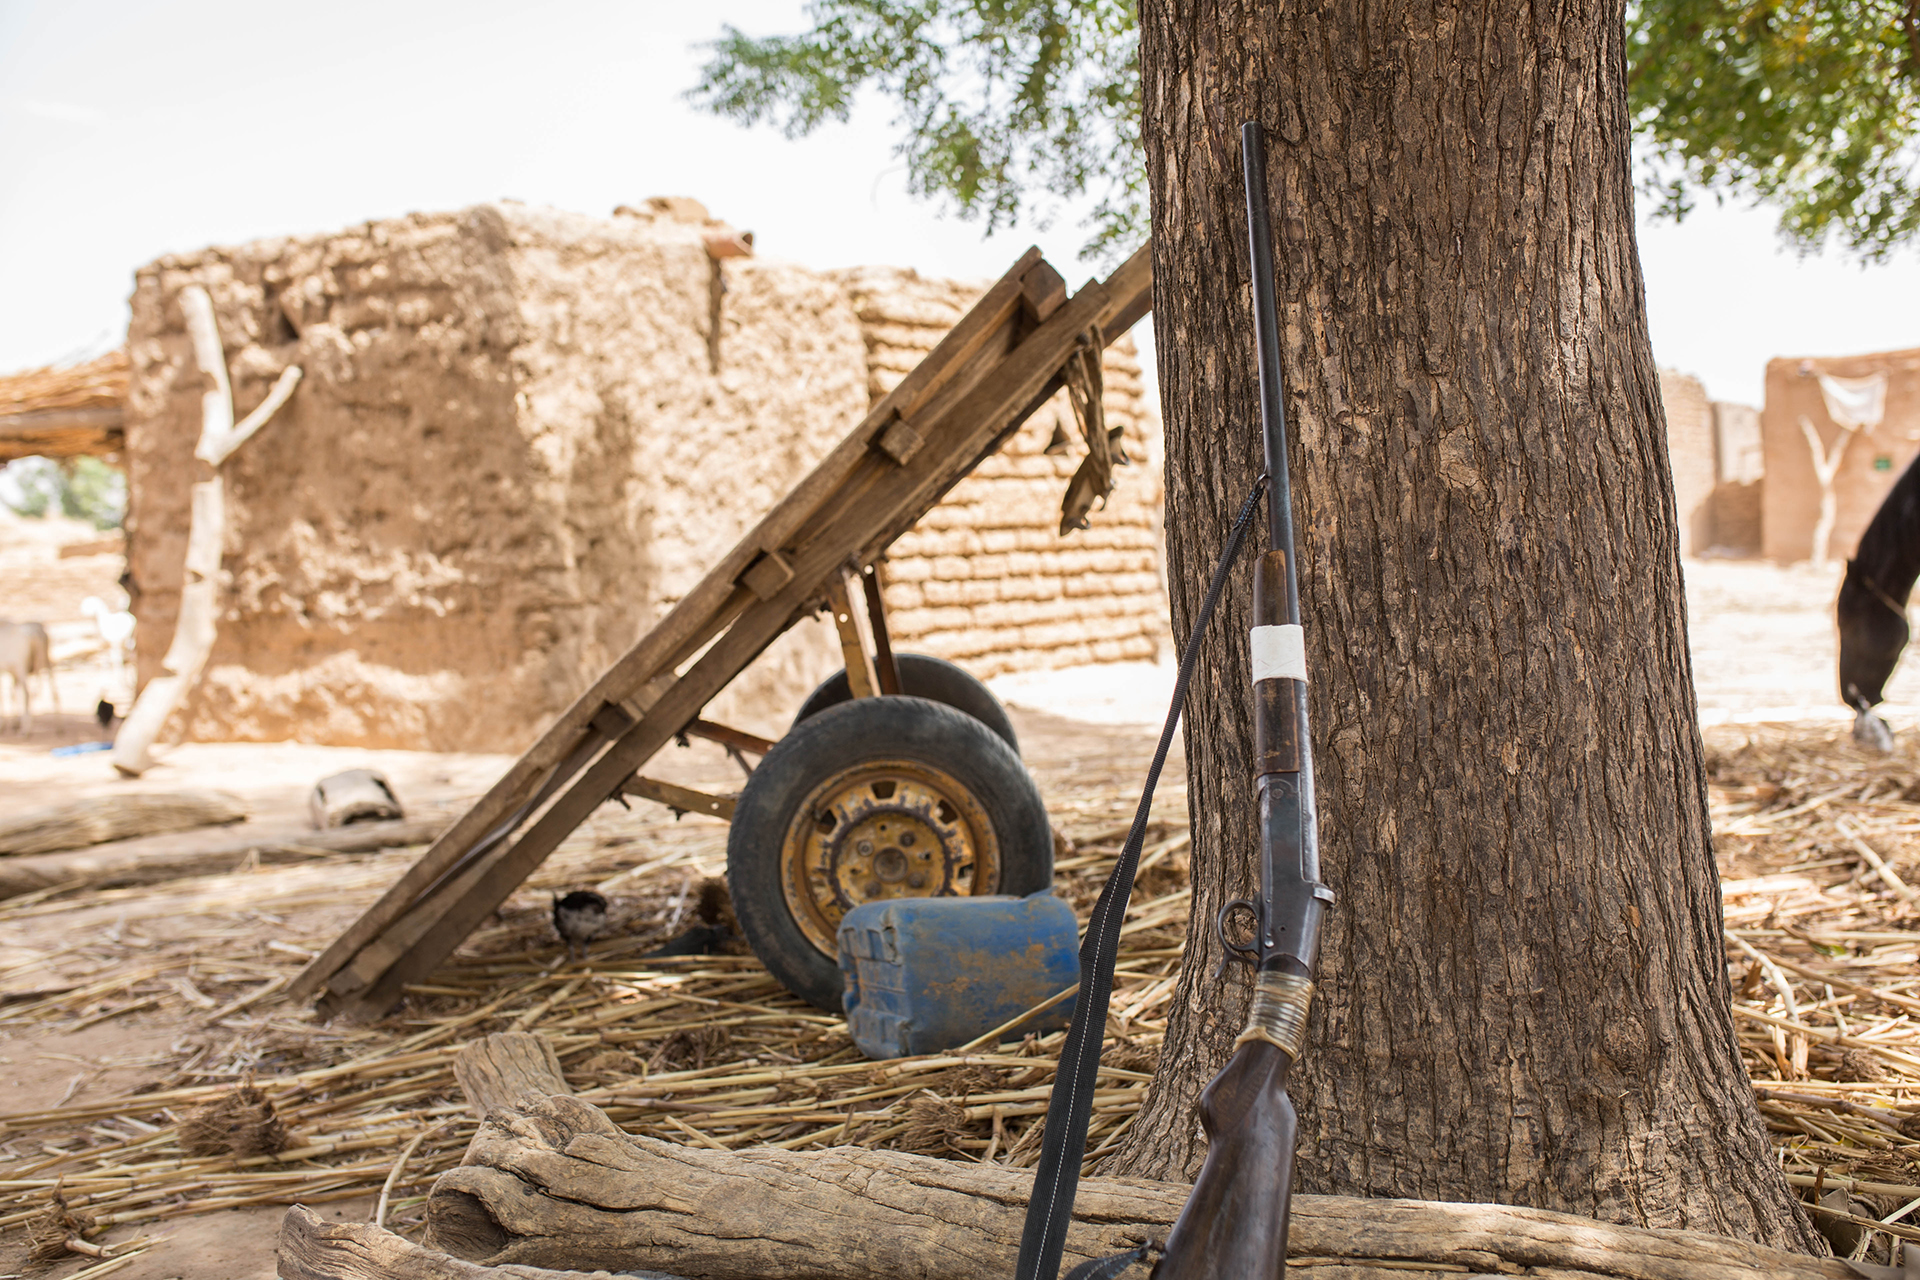 An old rifle leans against a tree